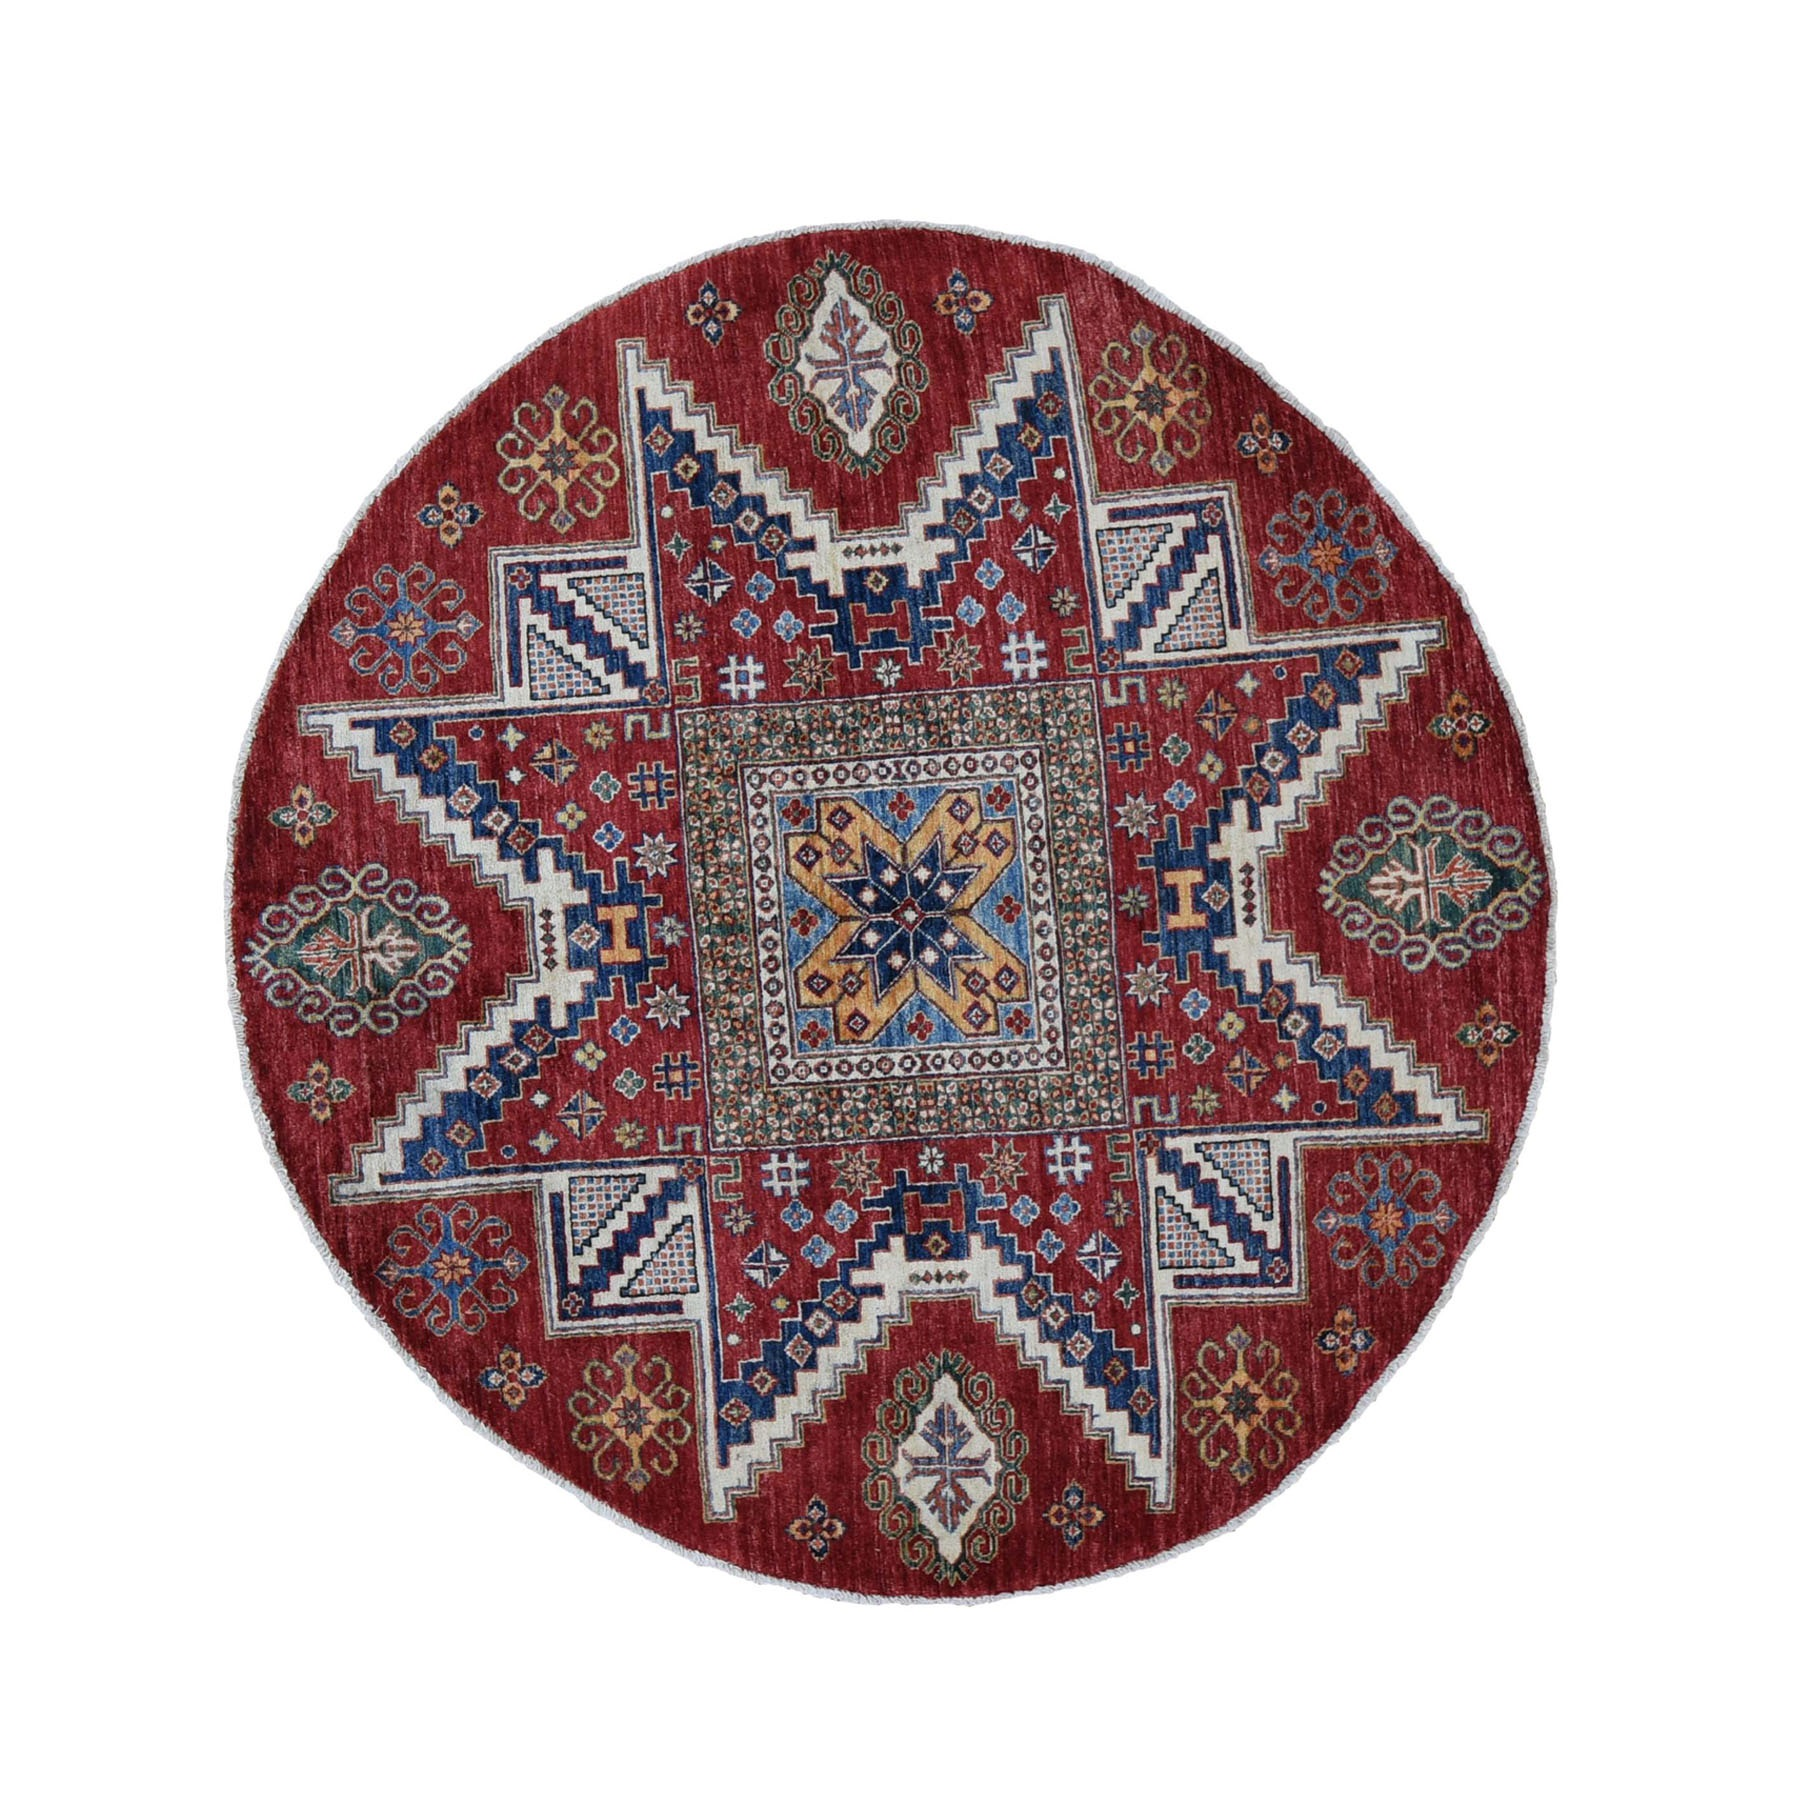 "5'5""x5'5"" Red Round Super Kazak Star Geometric Design Hand Knotted Pure Wool Oriental Rug"